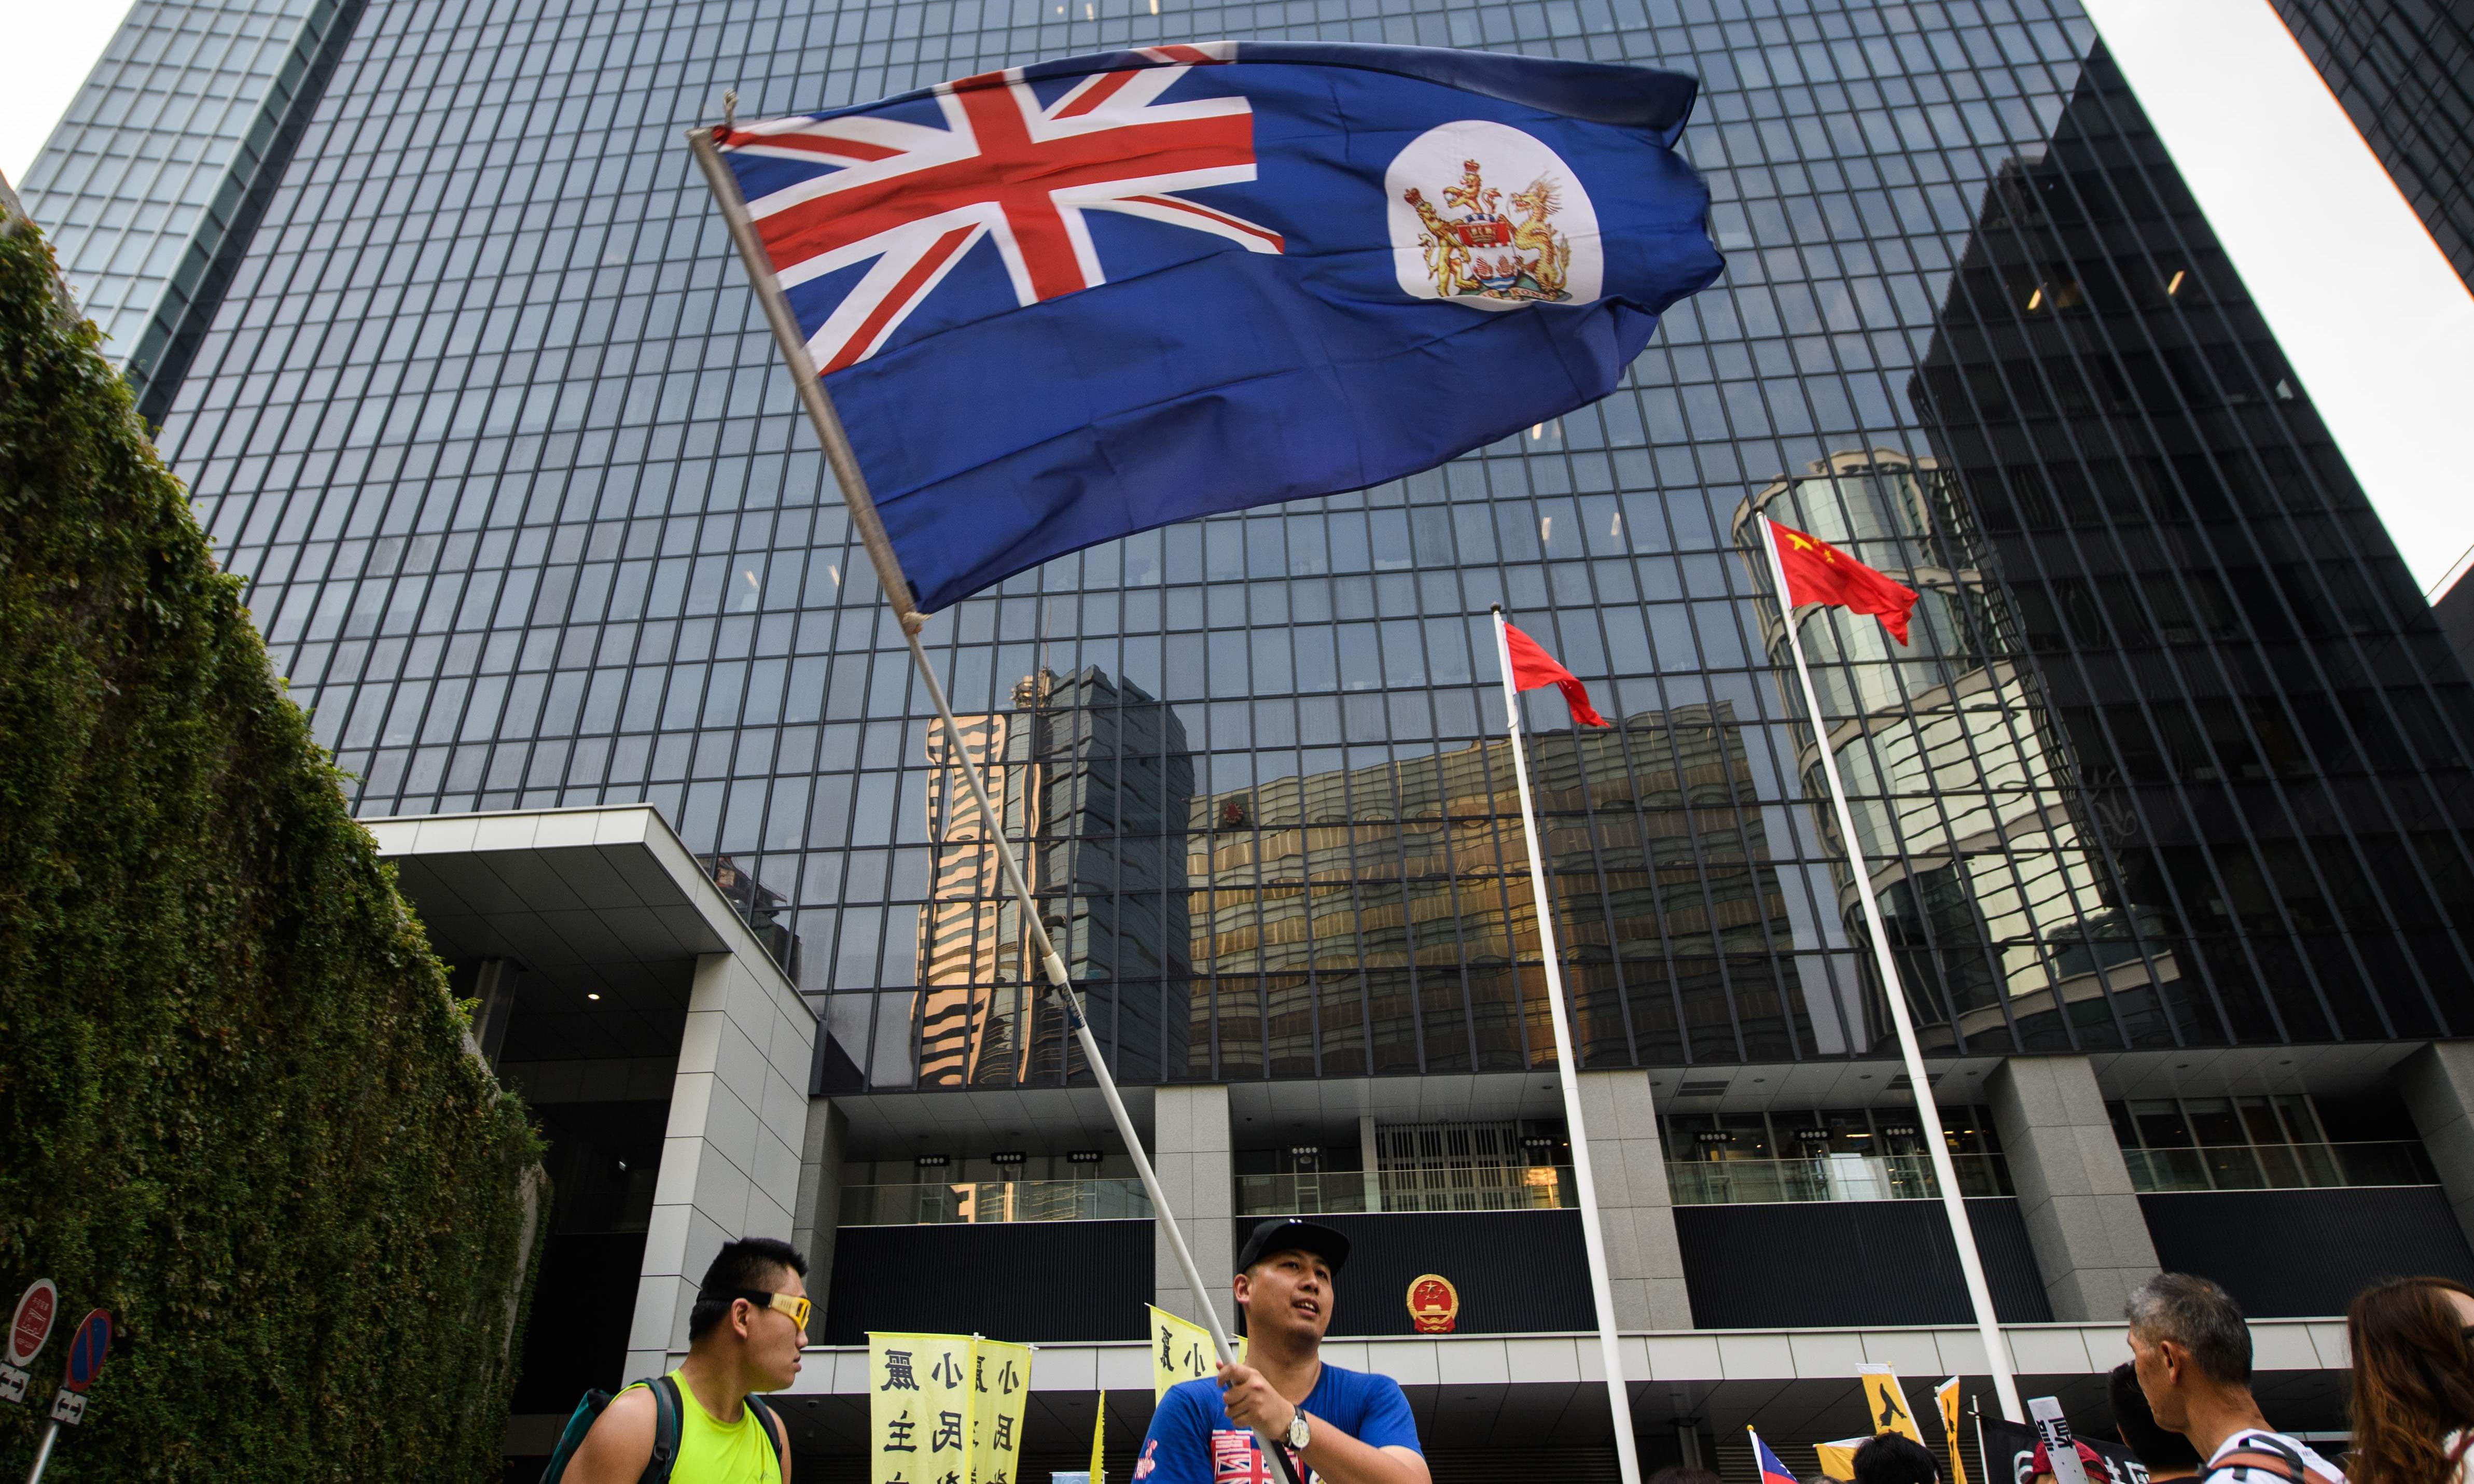 Thousands protest in Hong Kong over China suppression